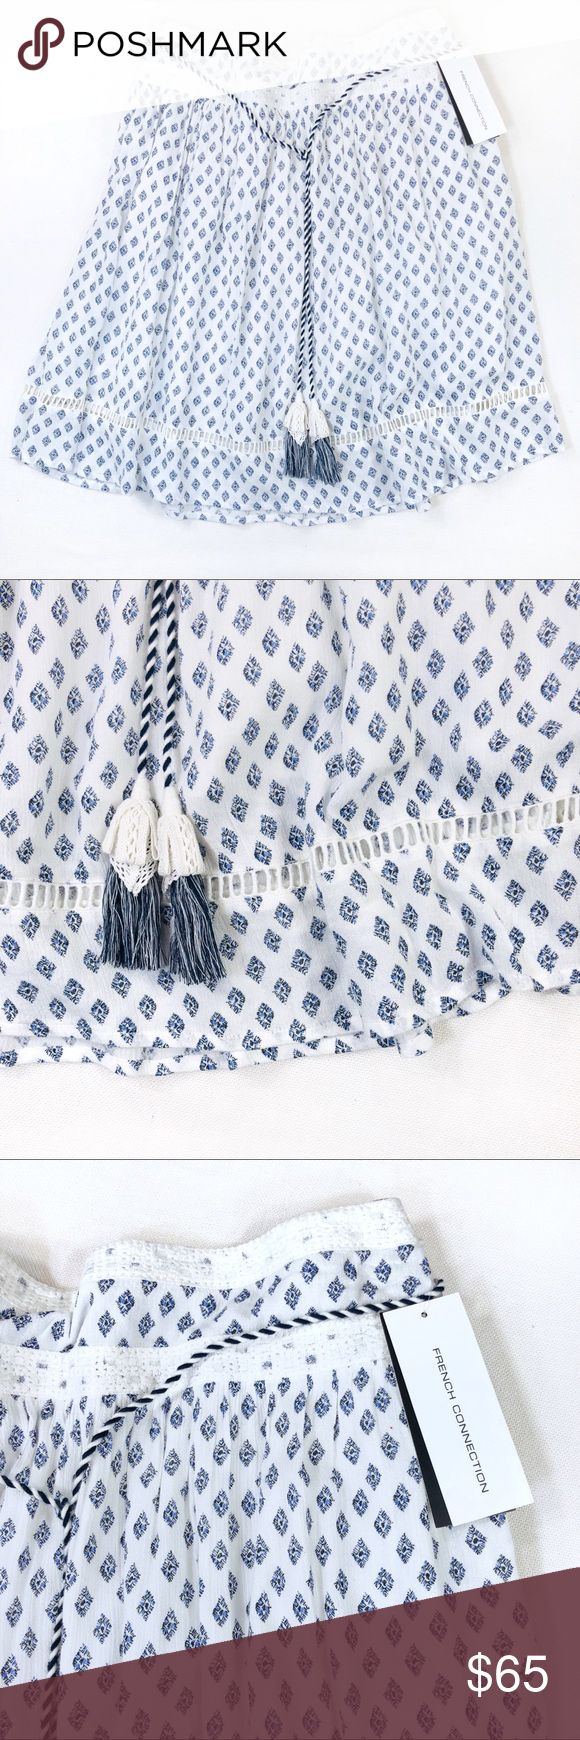 French Connection Ava Tile Flared Skirt NWT • French Connection • Ava Tile • Tassel Belt • Side Zipper • Flared Skirt • Size 10   Condition • New With Tag French Connection Skirts